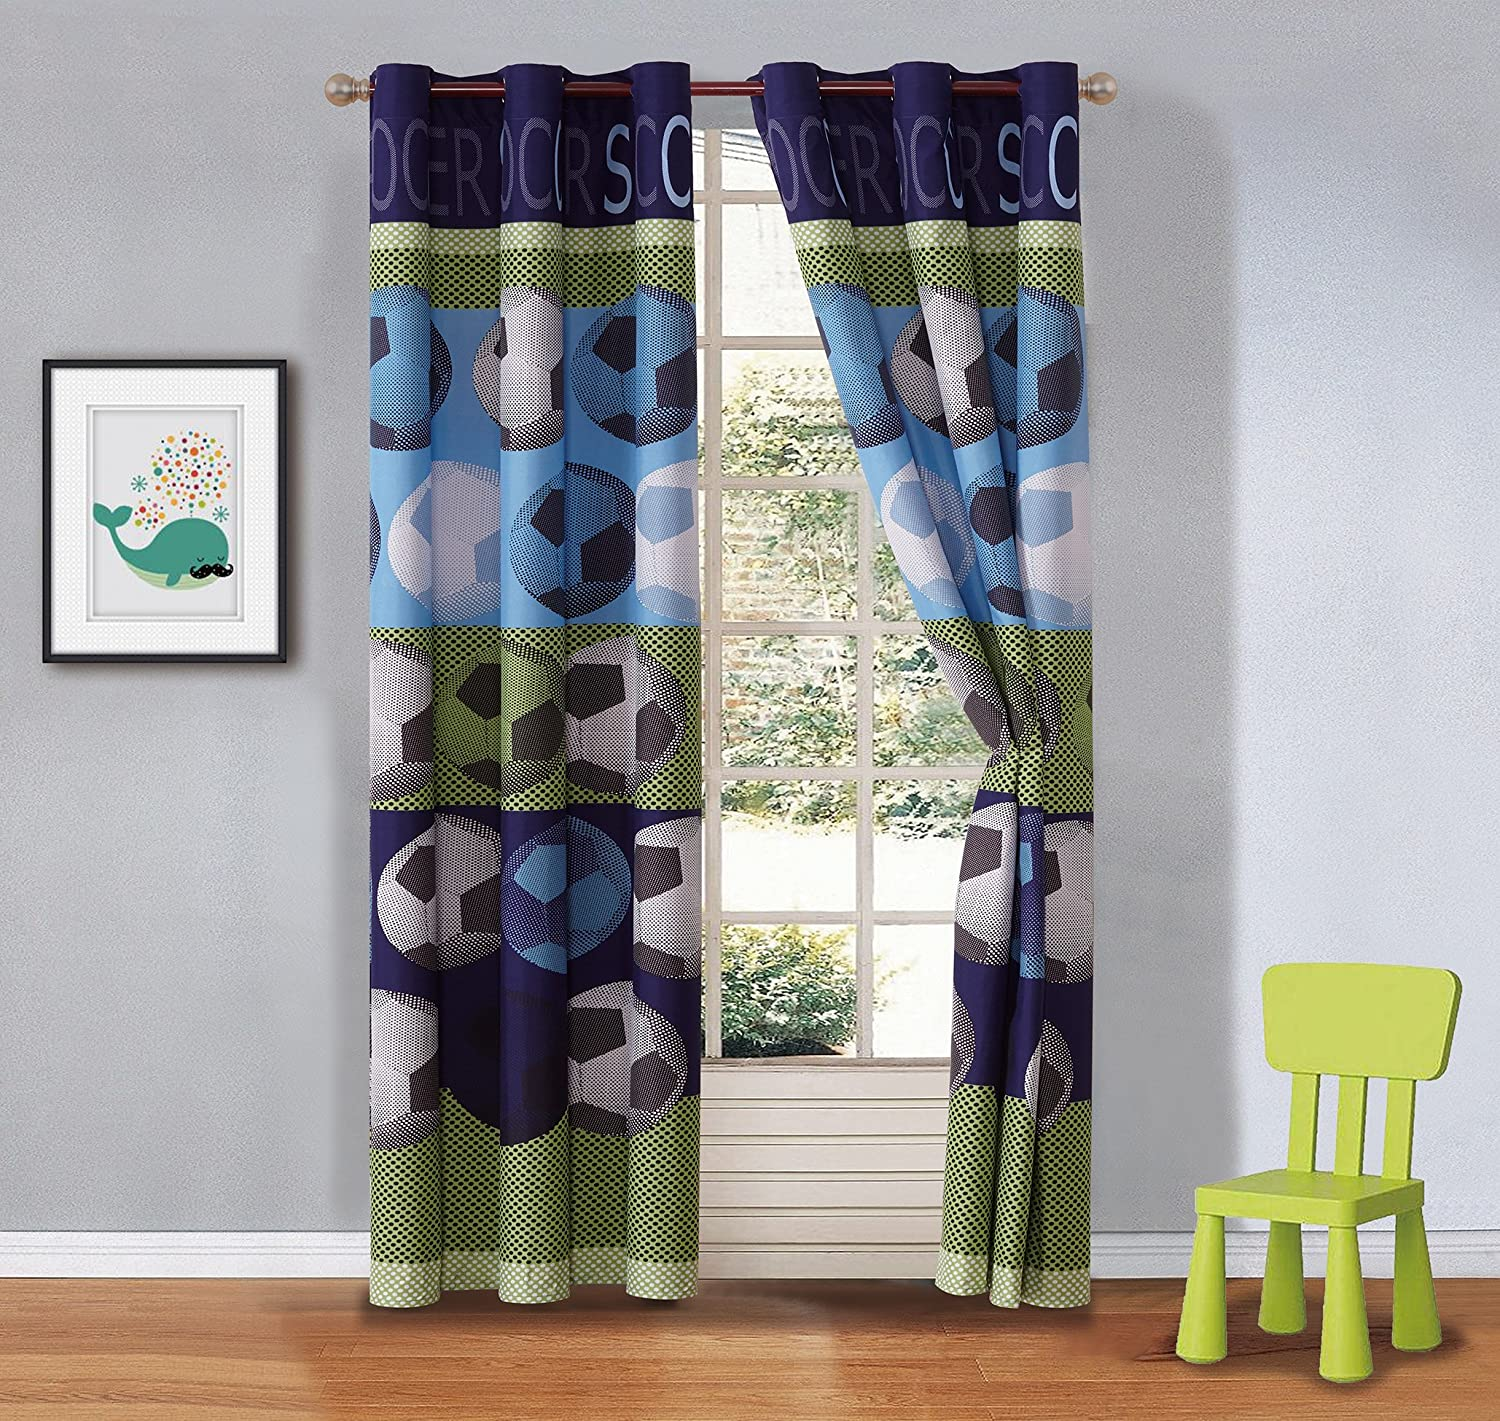 Mk Collection 2 Panel Curtain Set for Boys Room Soccer Light Blue Green Navy Blue White Black New